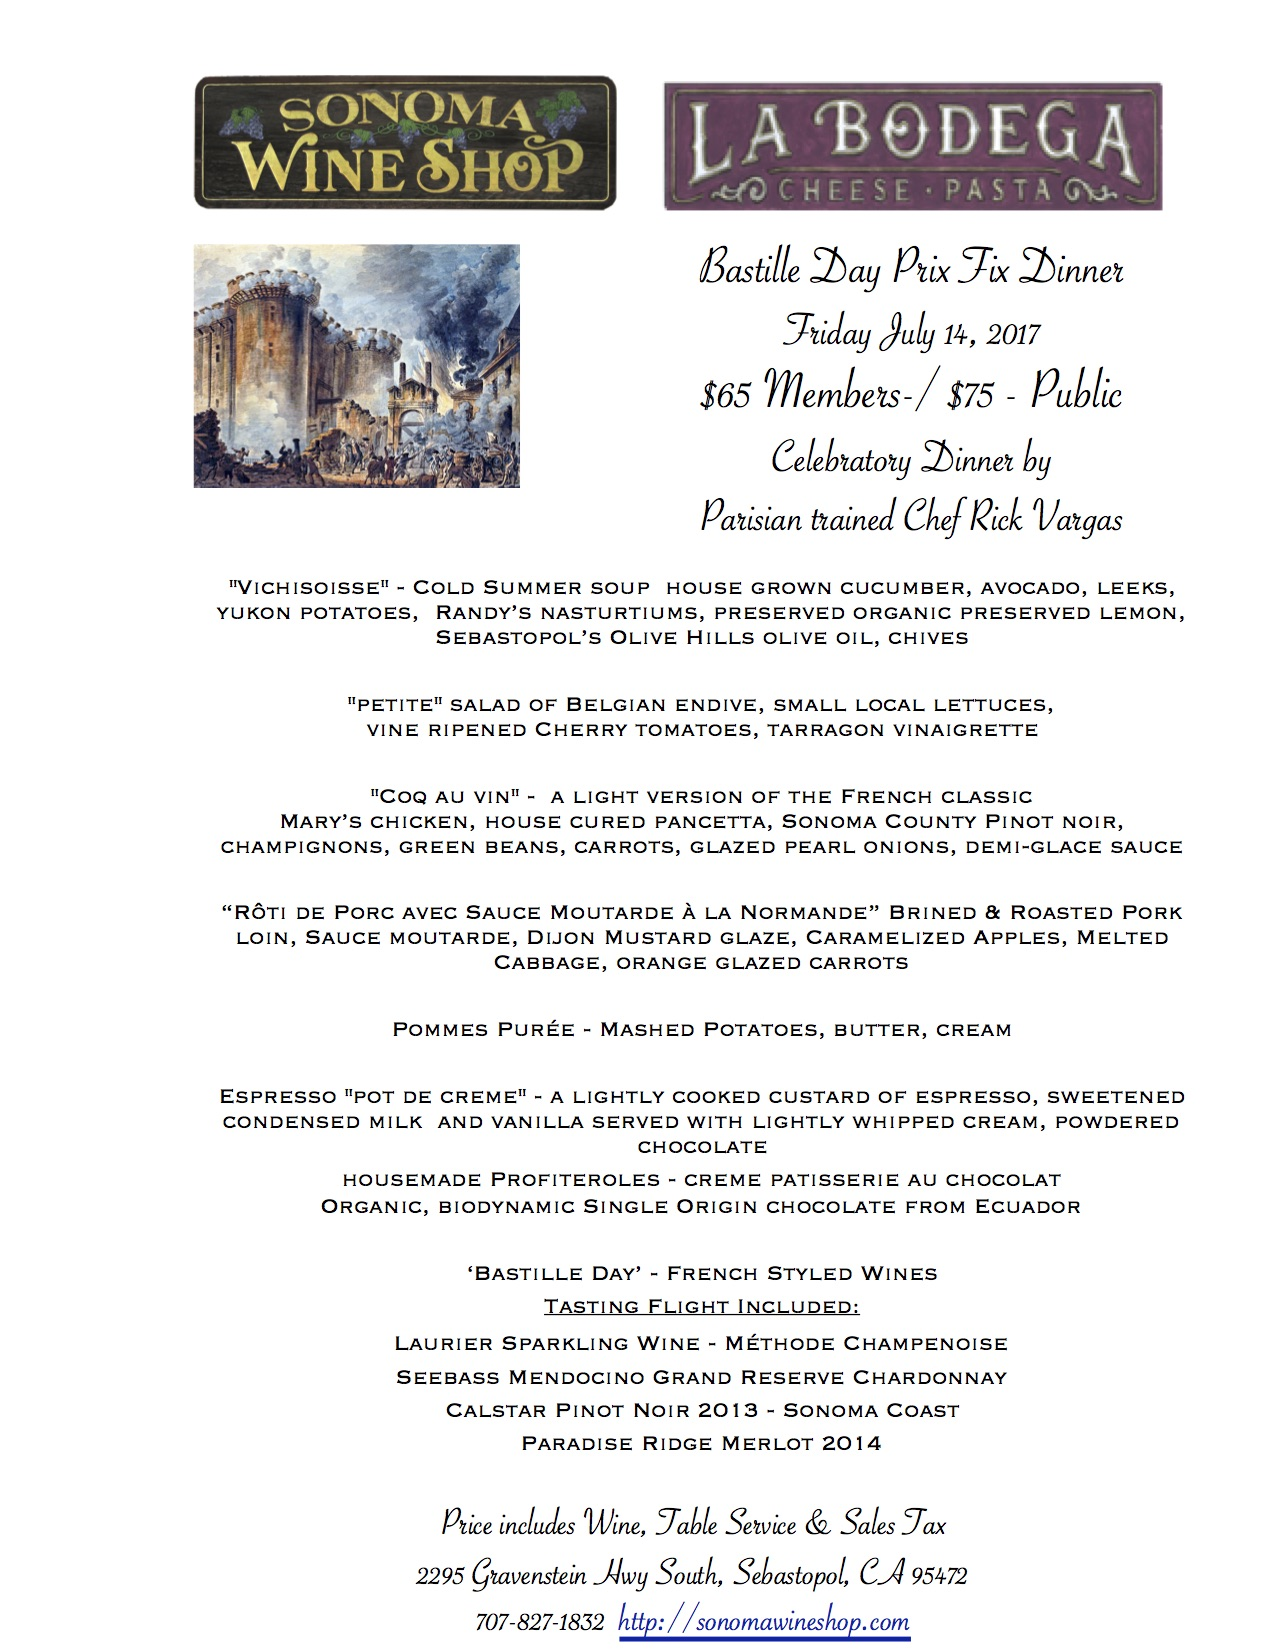 A special menu, wine pairing included, that would make anyone from France cry tears of joy.